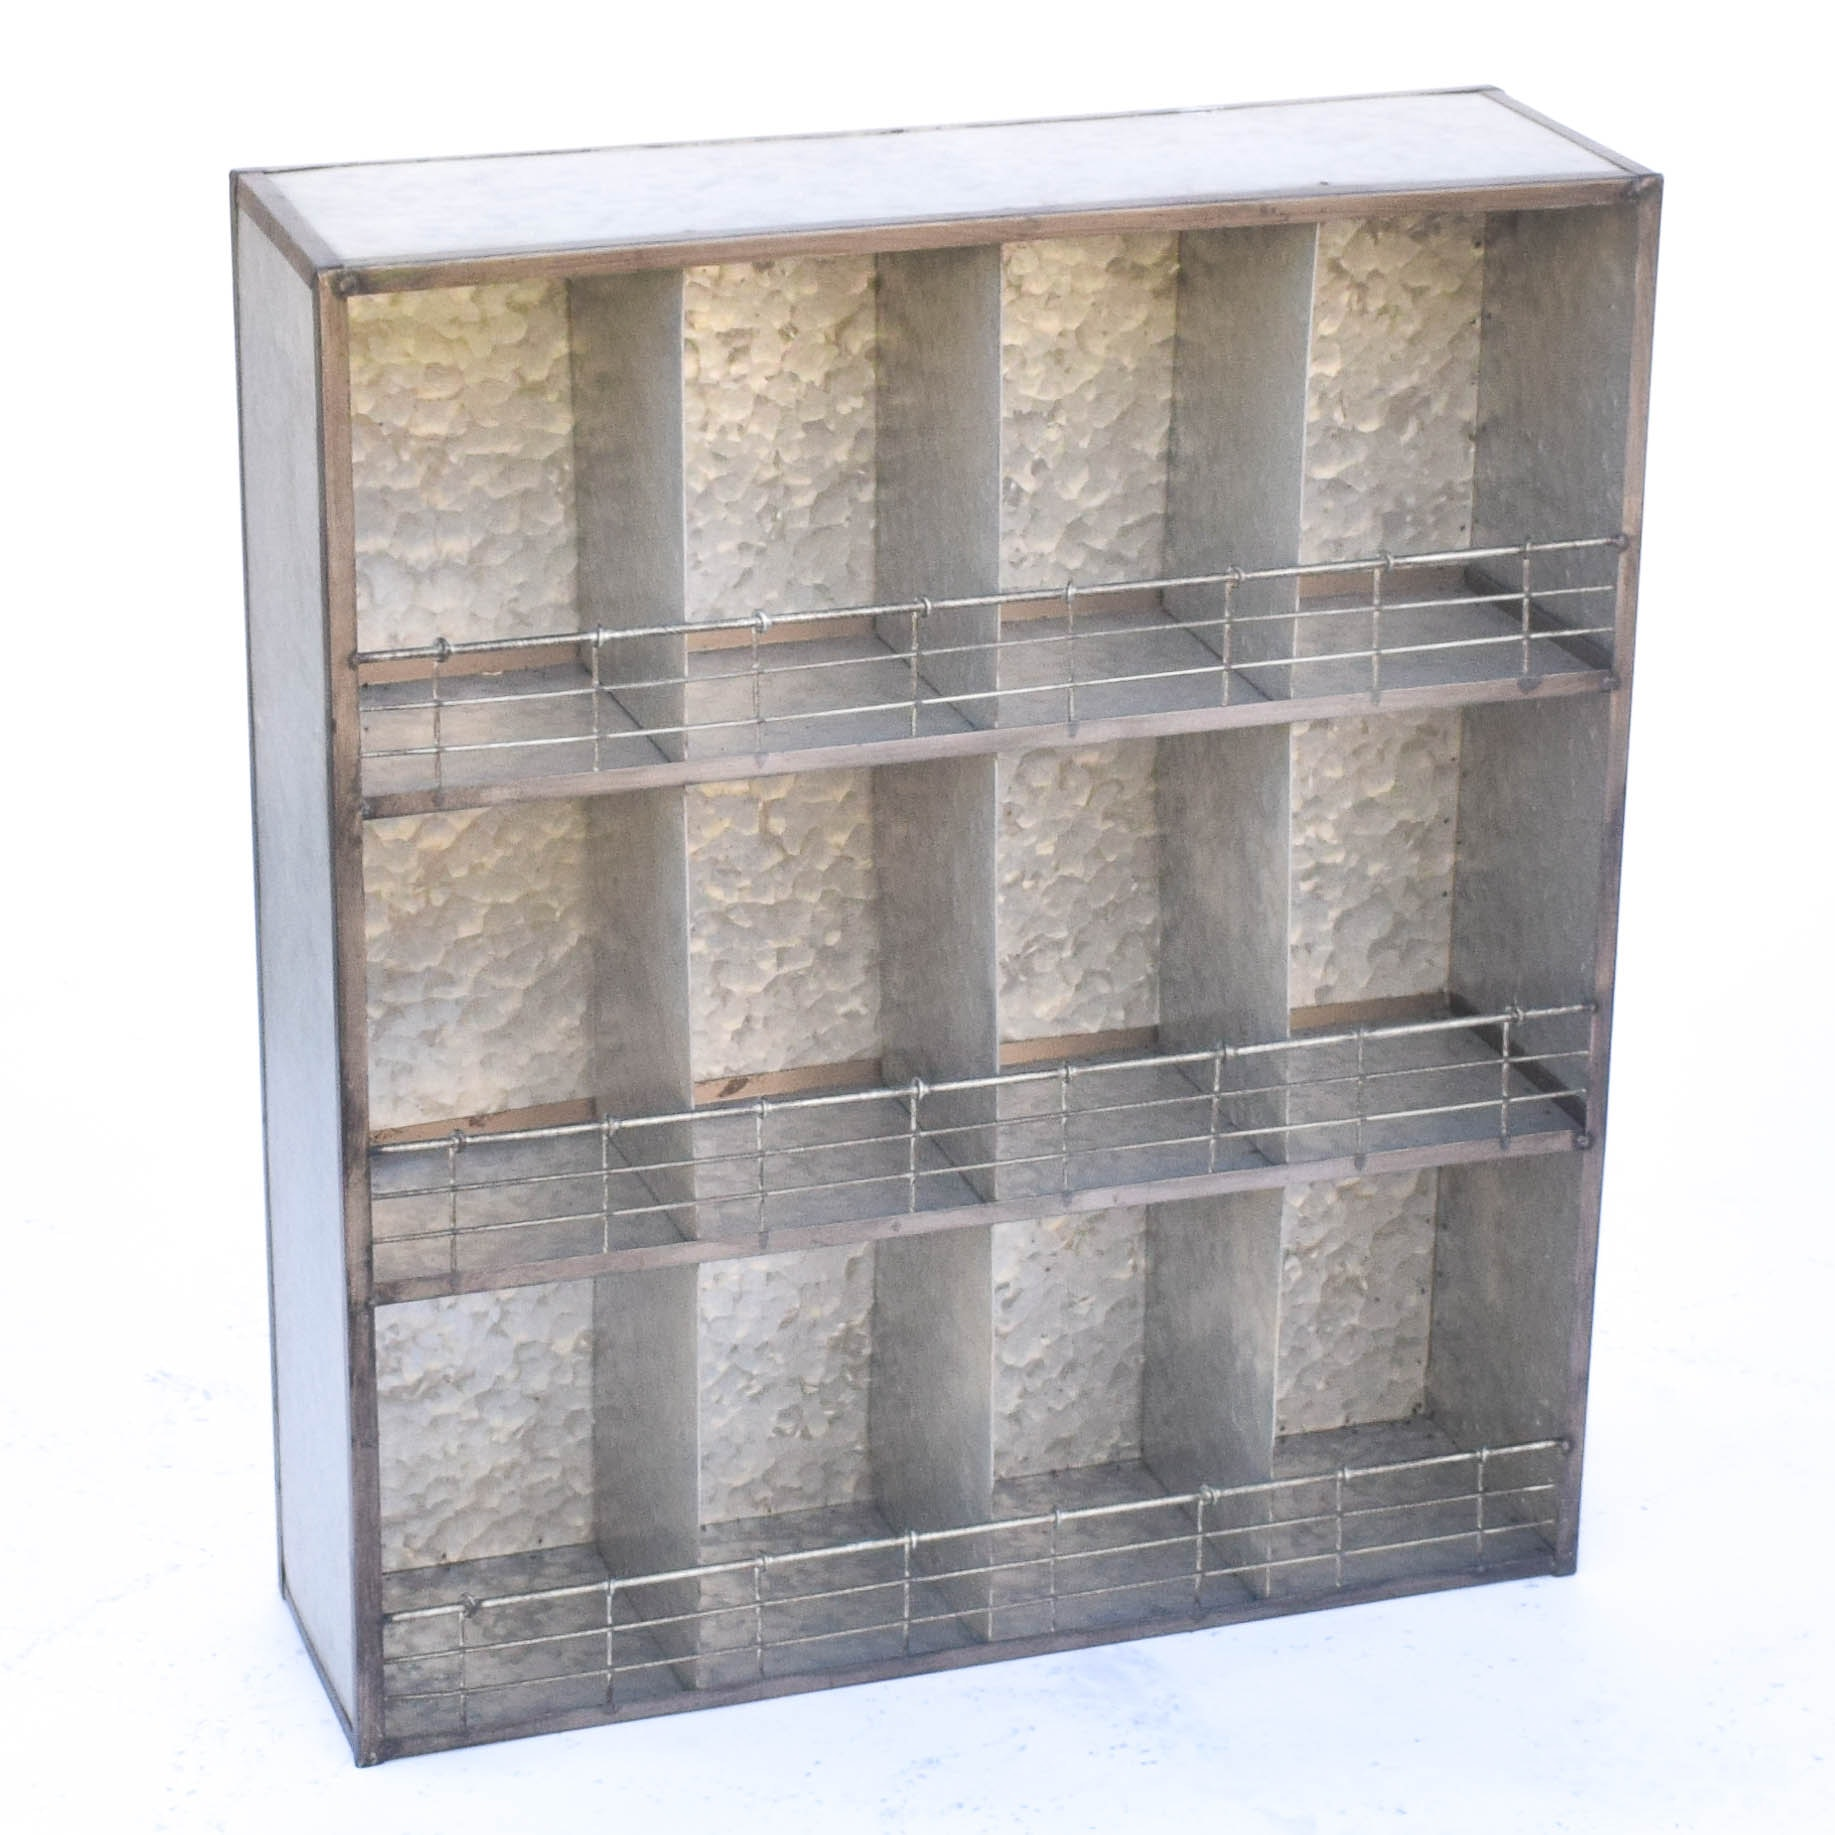 Contemporary Industrial Metal Shelving Unit